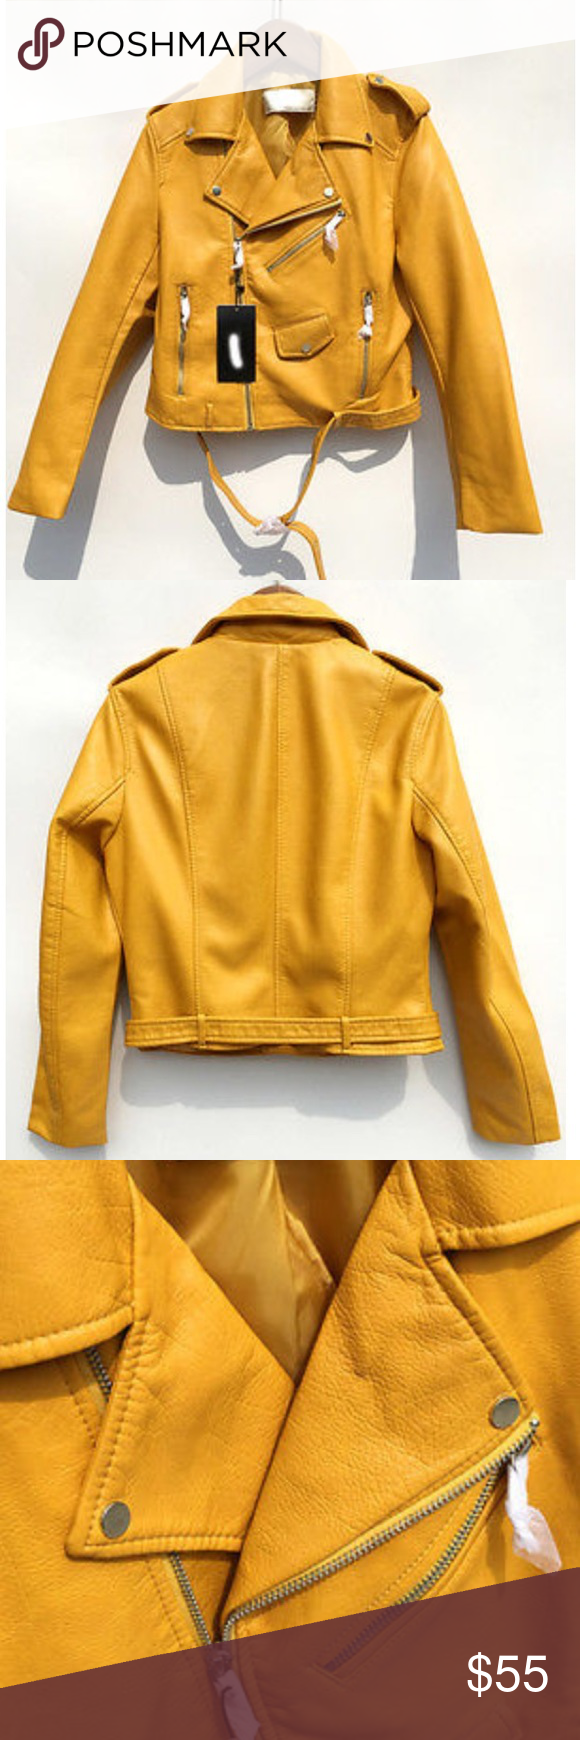 Zara faux mustard yellow jacket (With images) Jackets